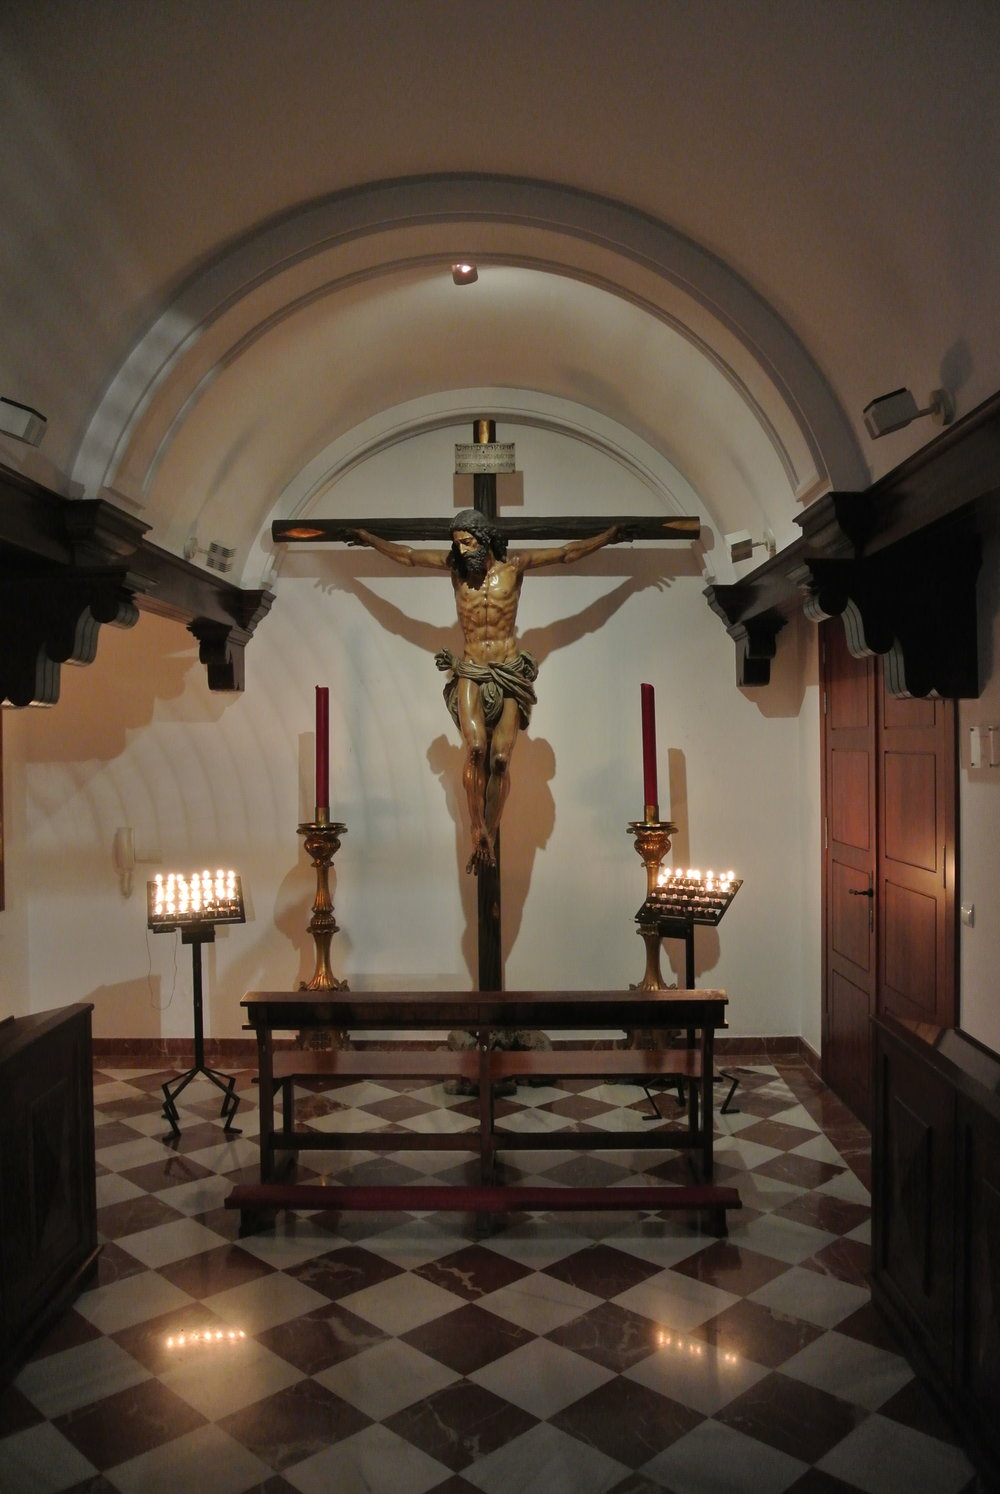 Off to the right of the sanctuary is a small candlelit nave